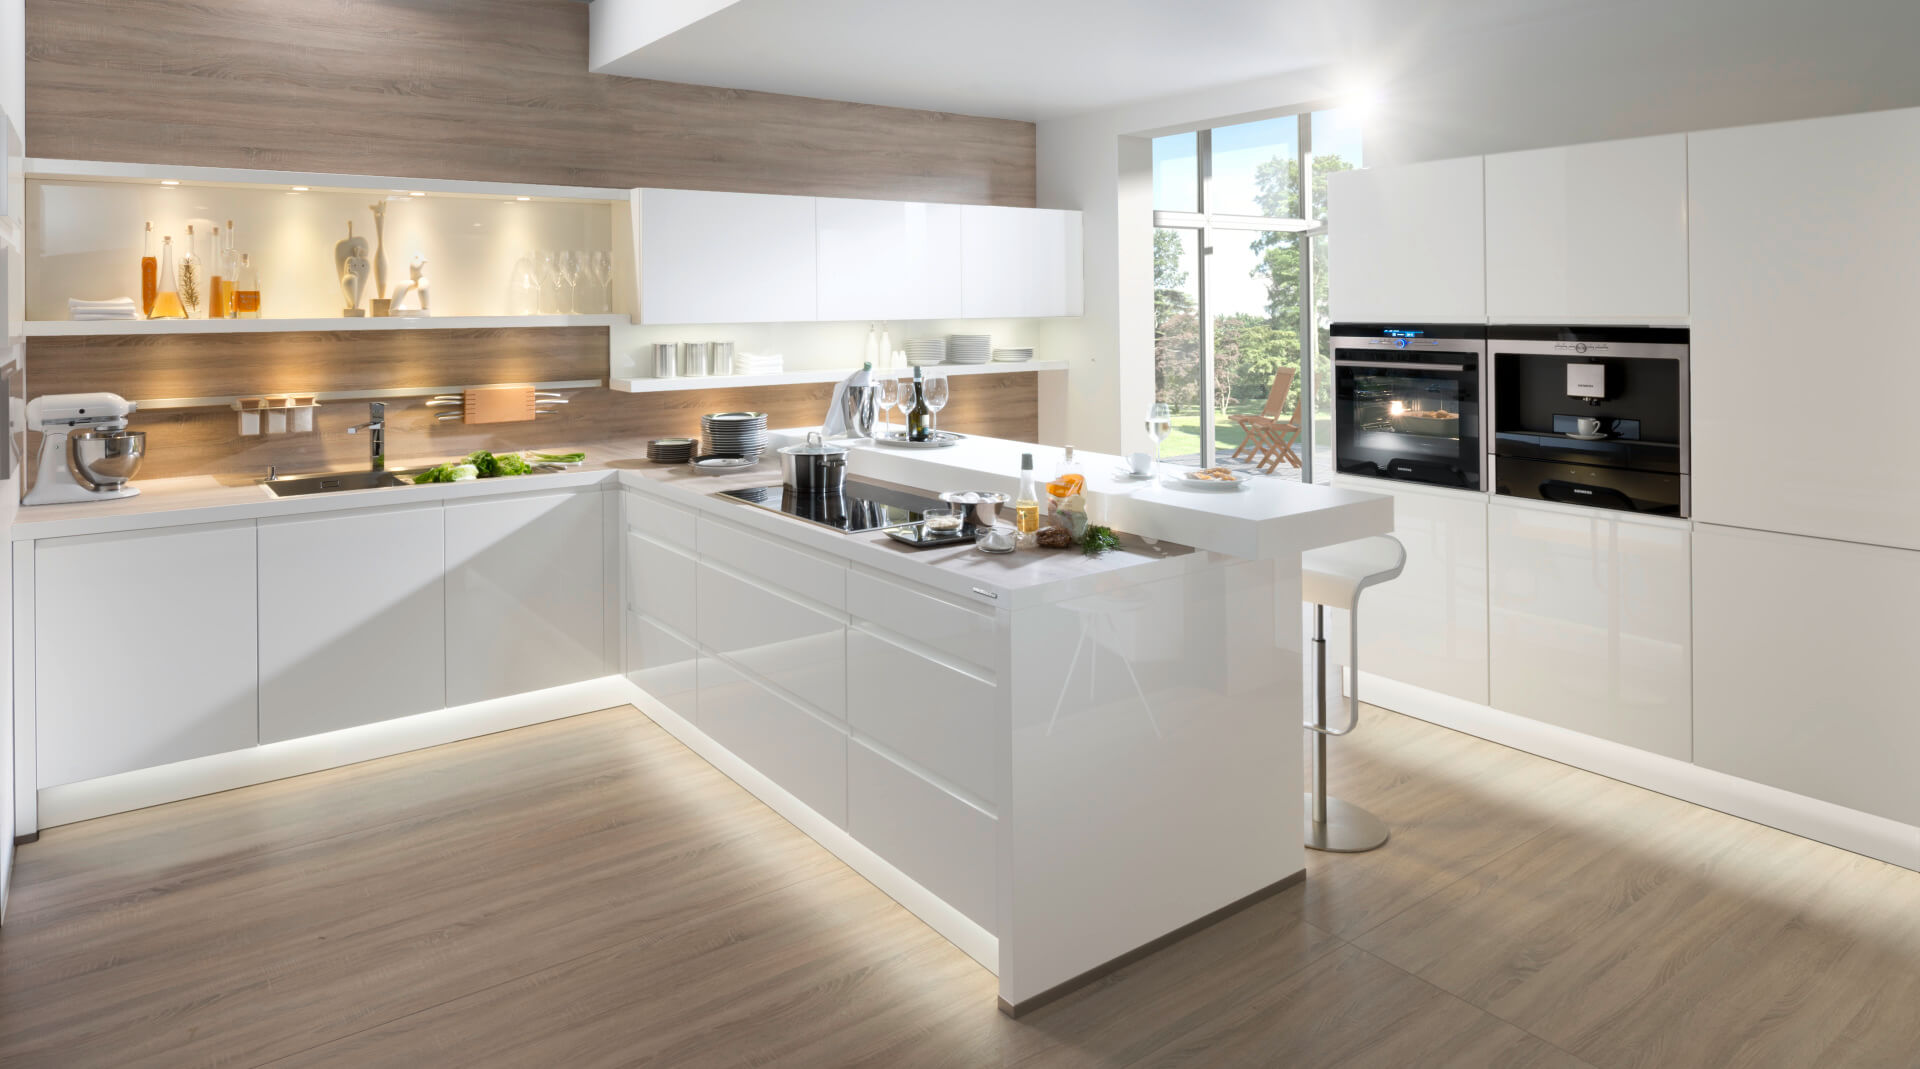 Nolte-Kitchens-Alpha-Lack-Gallery3